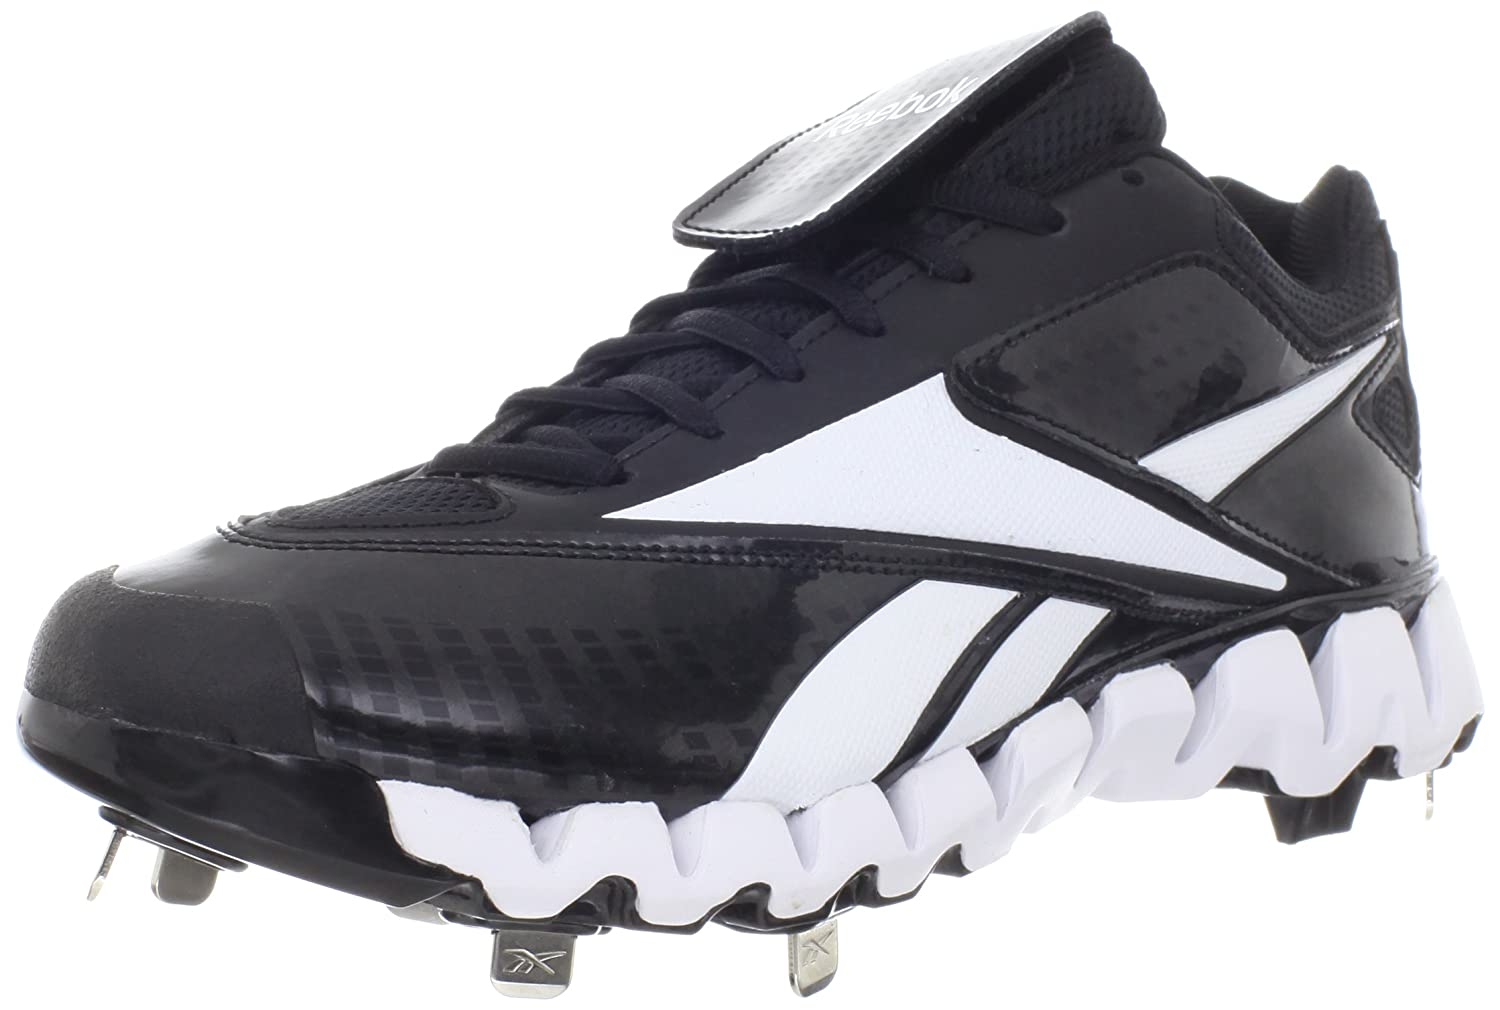 cb5828e036bf90 Reebok Men s Zig Cooperstown Low Baseball Shoe Black White 13.5 D(M) US  Buy  Online at Low Prices in India - Amazon.in